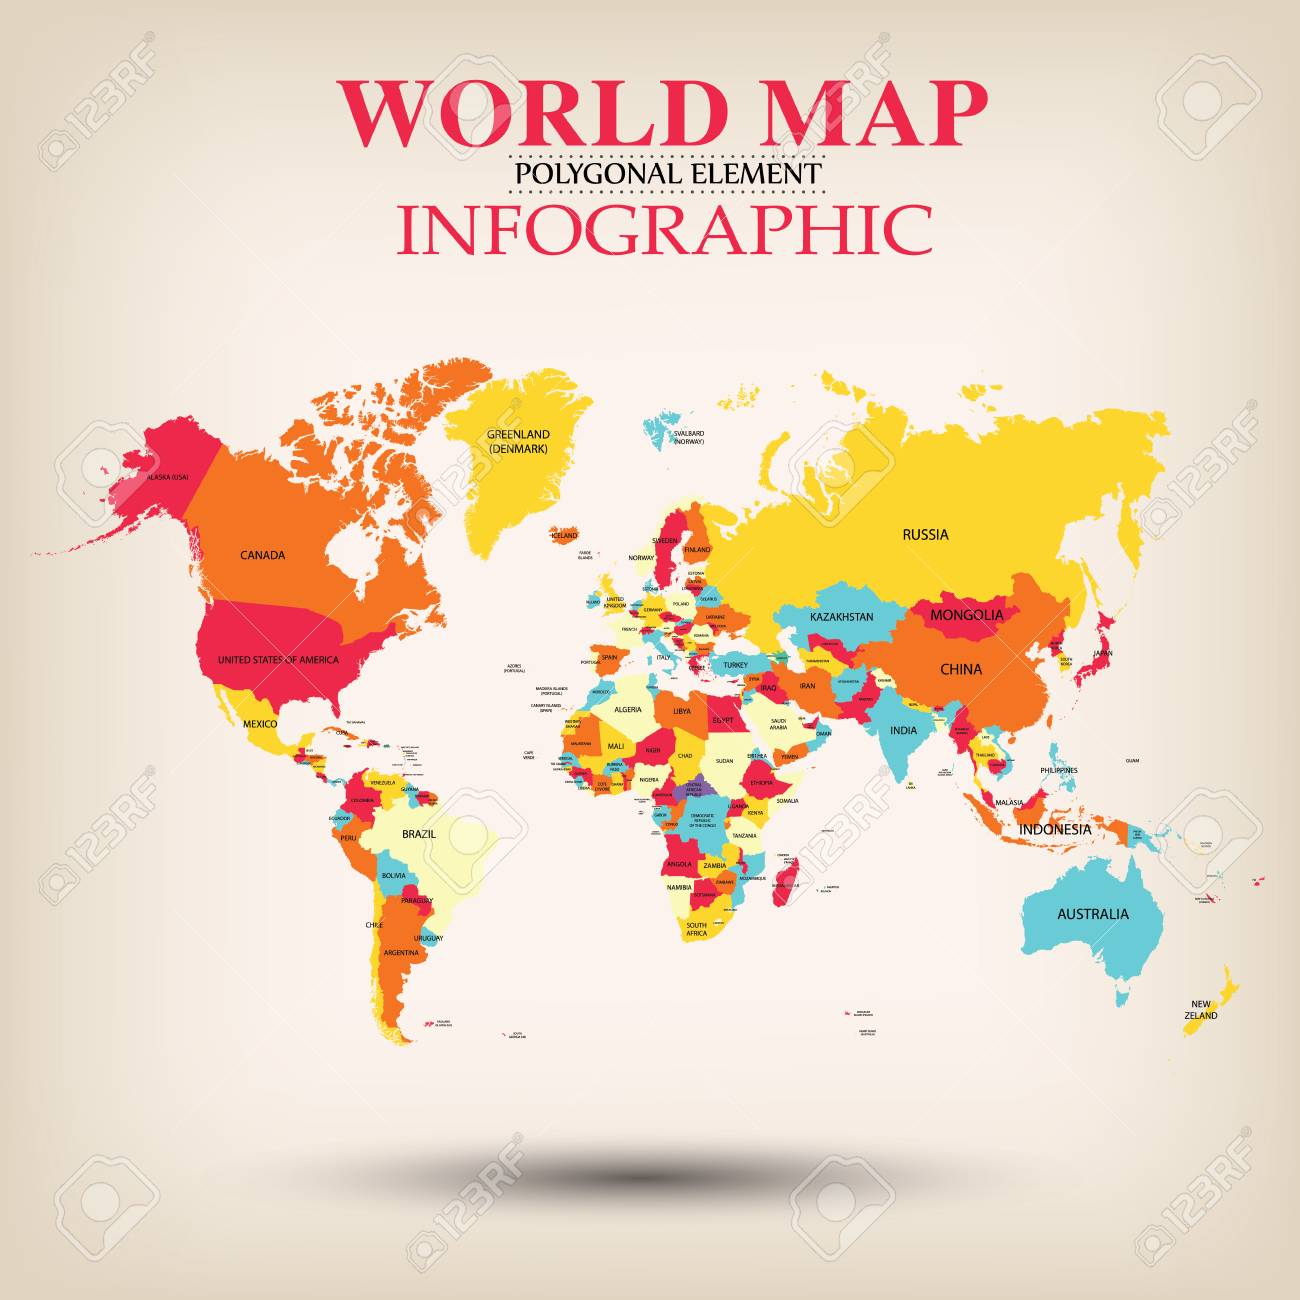 World map infographic vector royalty free cliparts vectors and world map infographic vector stock vector 47899542 gumiabroncs Gallery